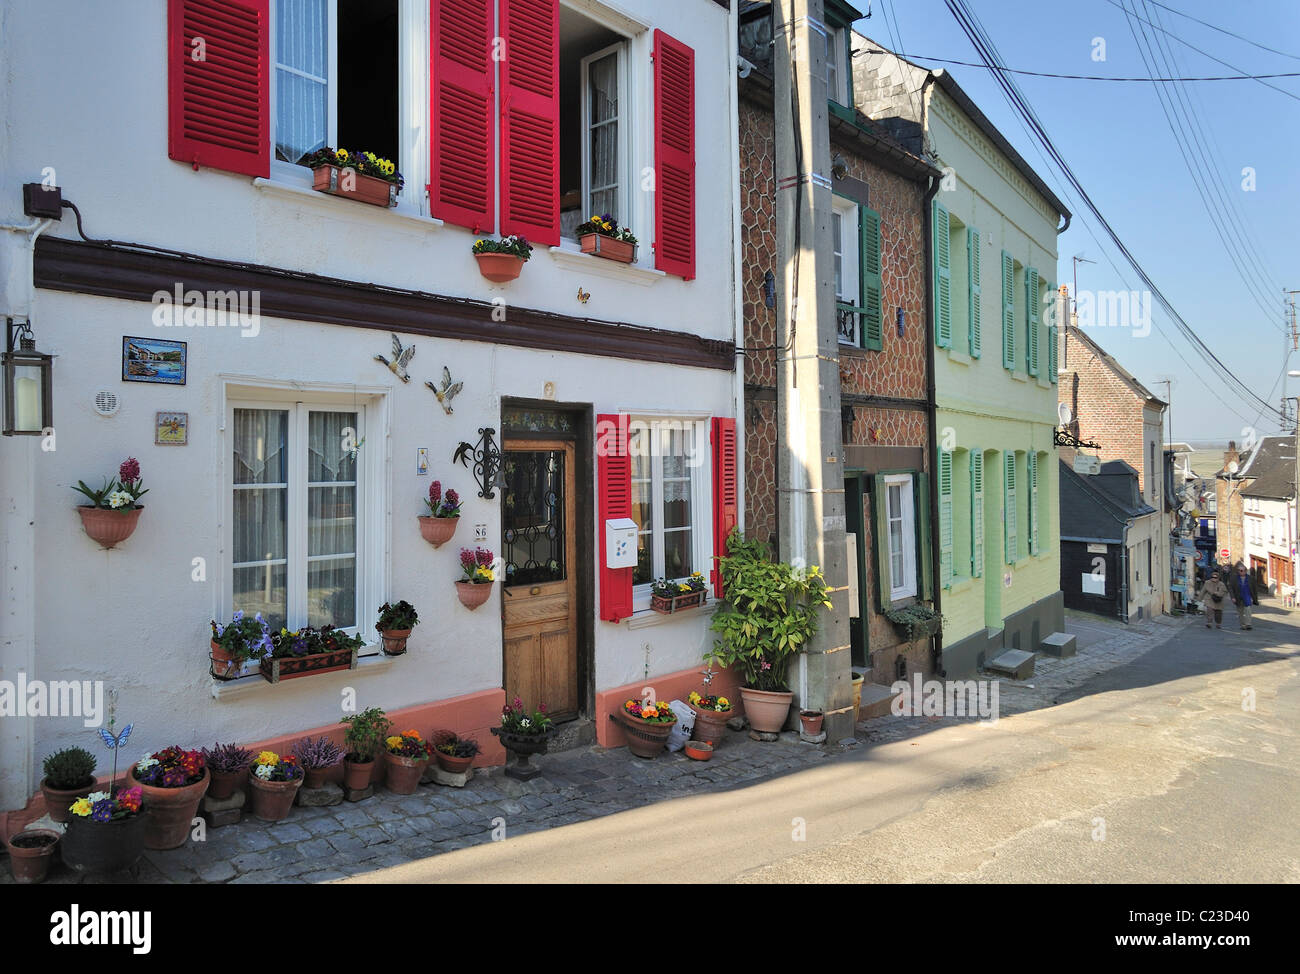 Street with old houses in the district of the sailors at Saint-Valery-sur-Somme, Bay of the Somme, Picardy, France - Stock Image